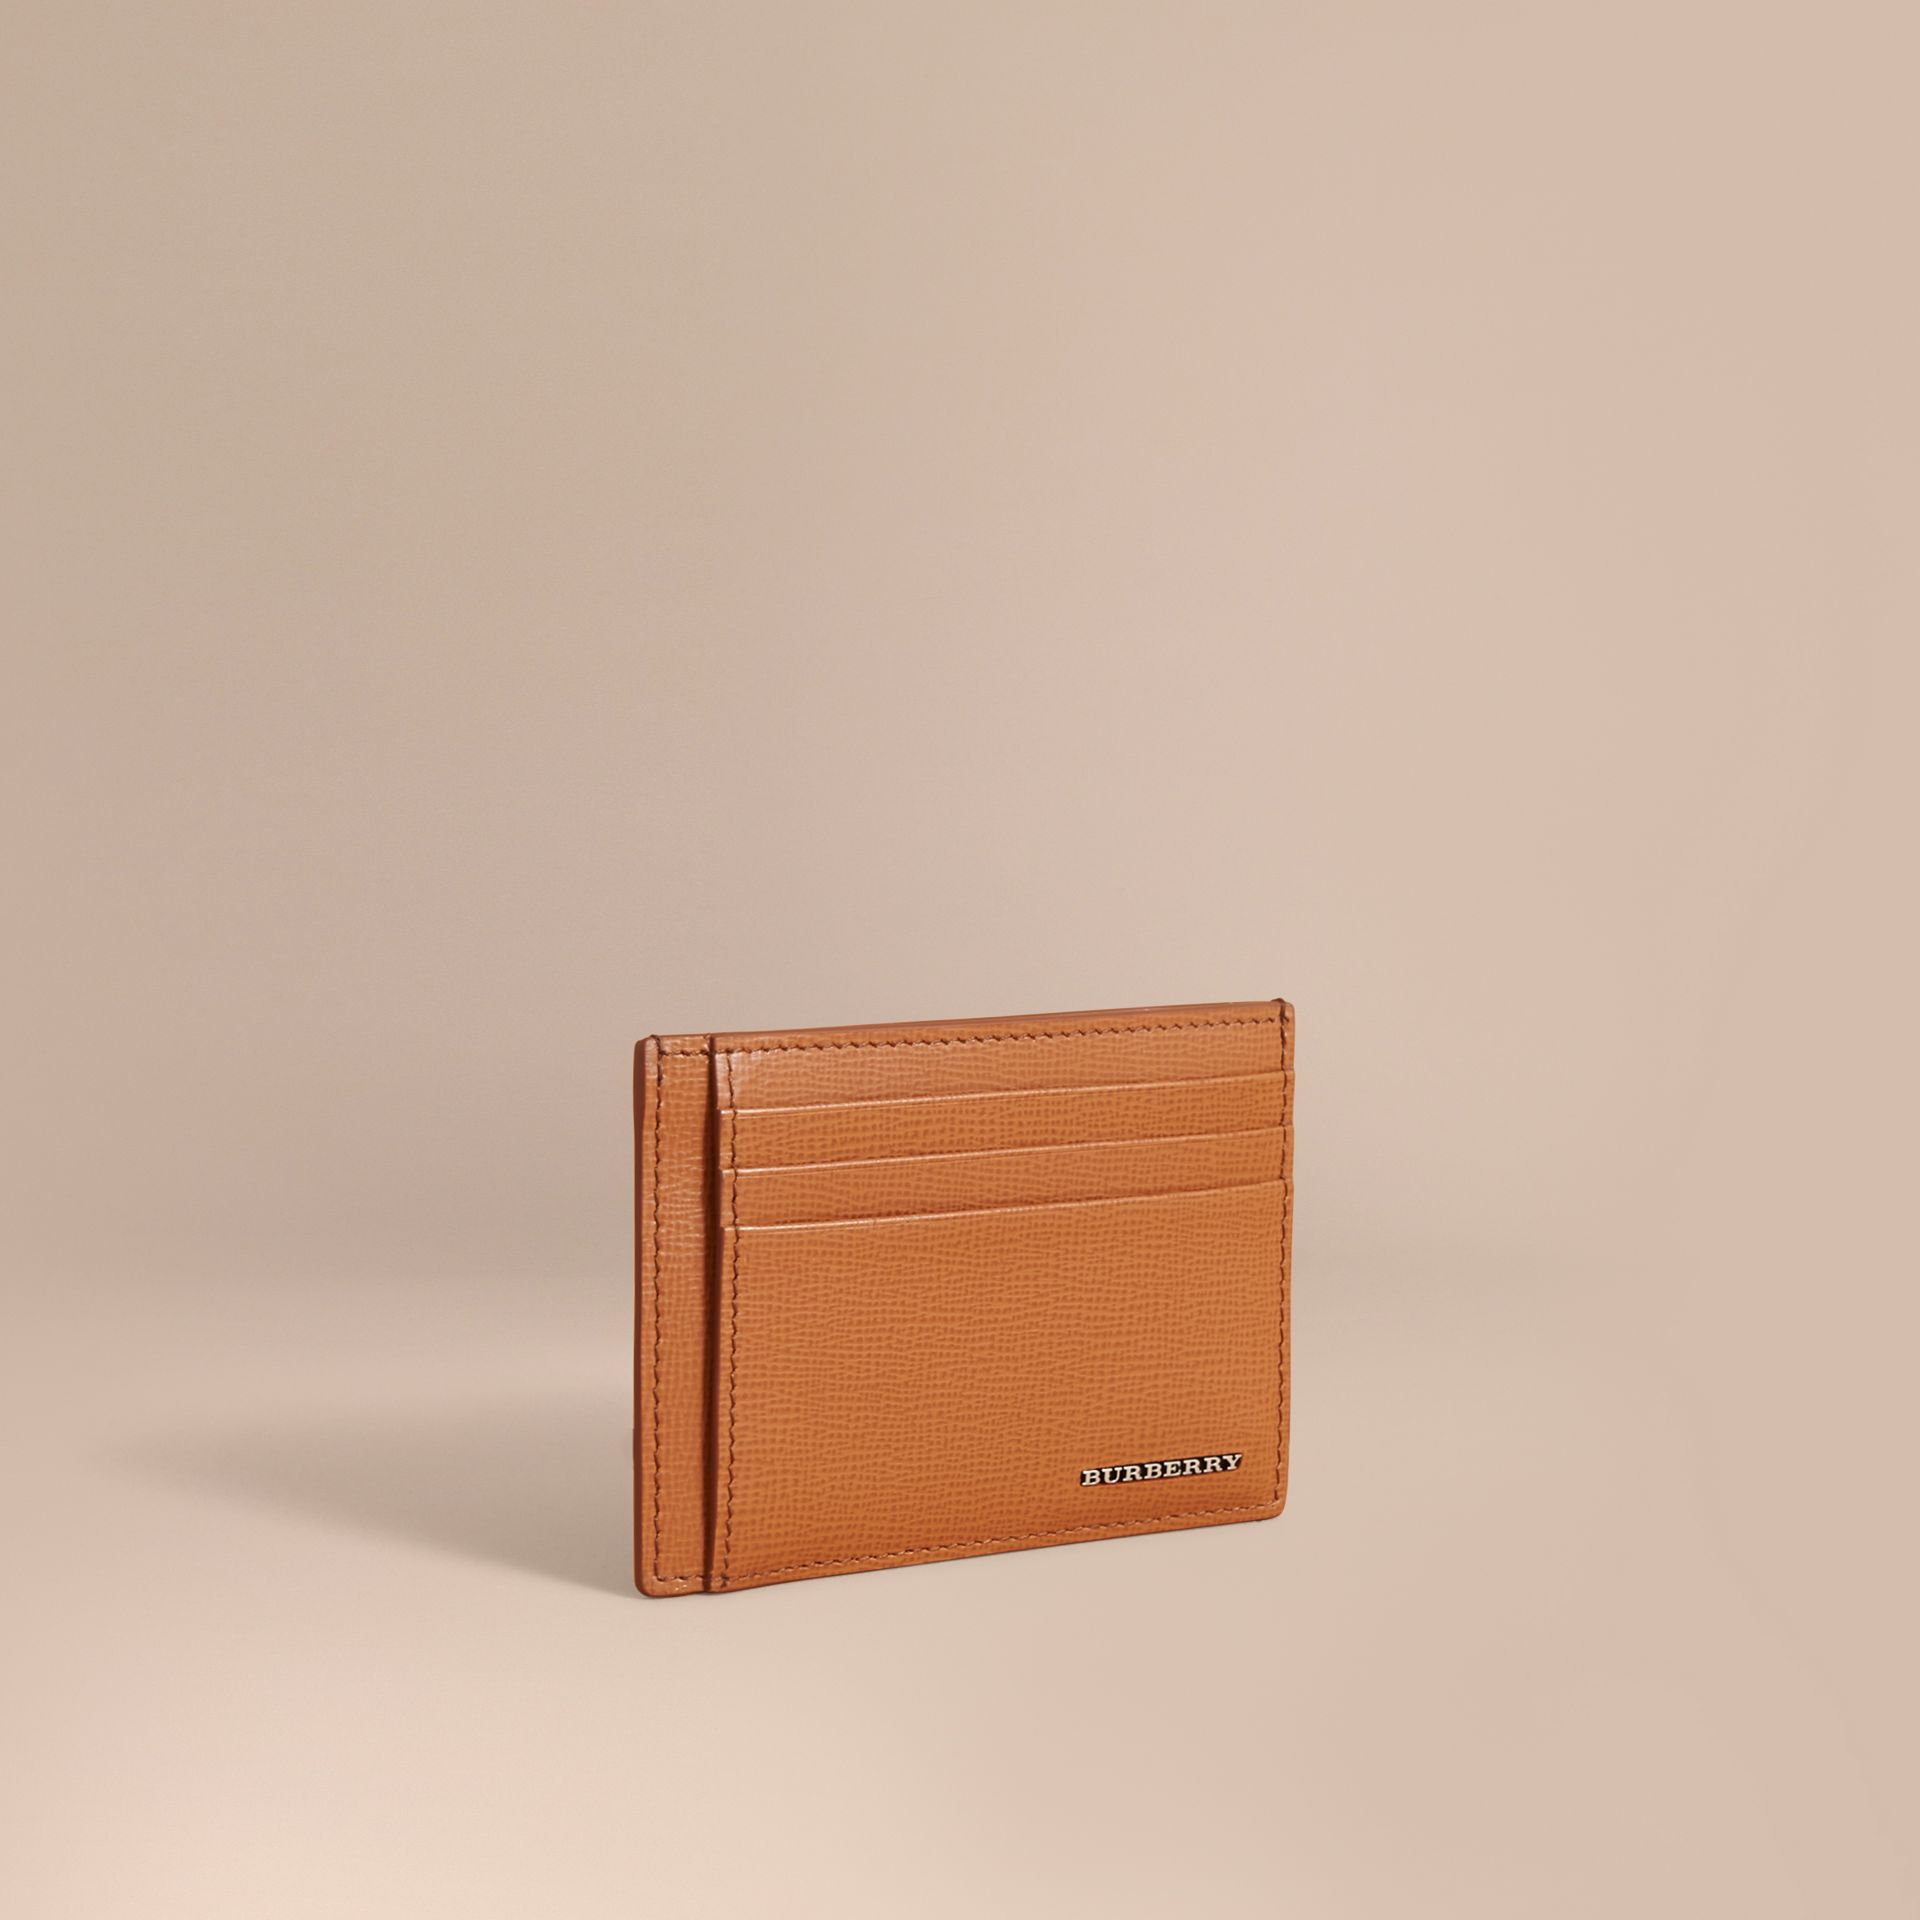 London Leather Money Clip Card Case in Tan - Men | Burberry - gallery image 1